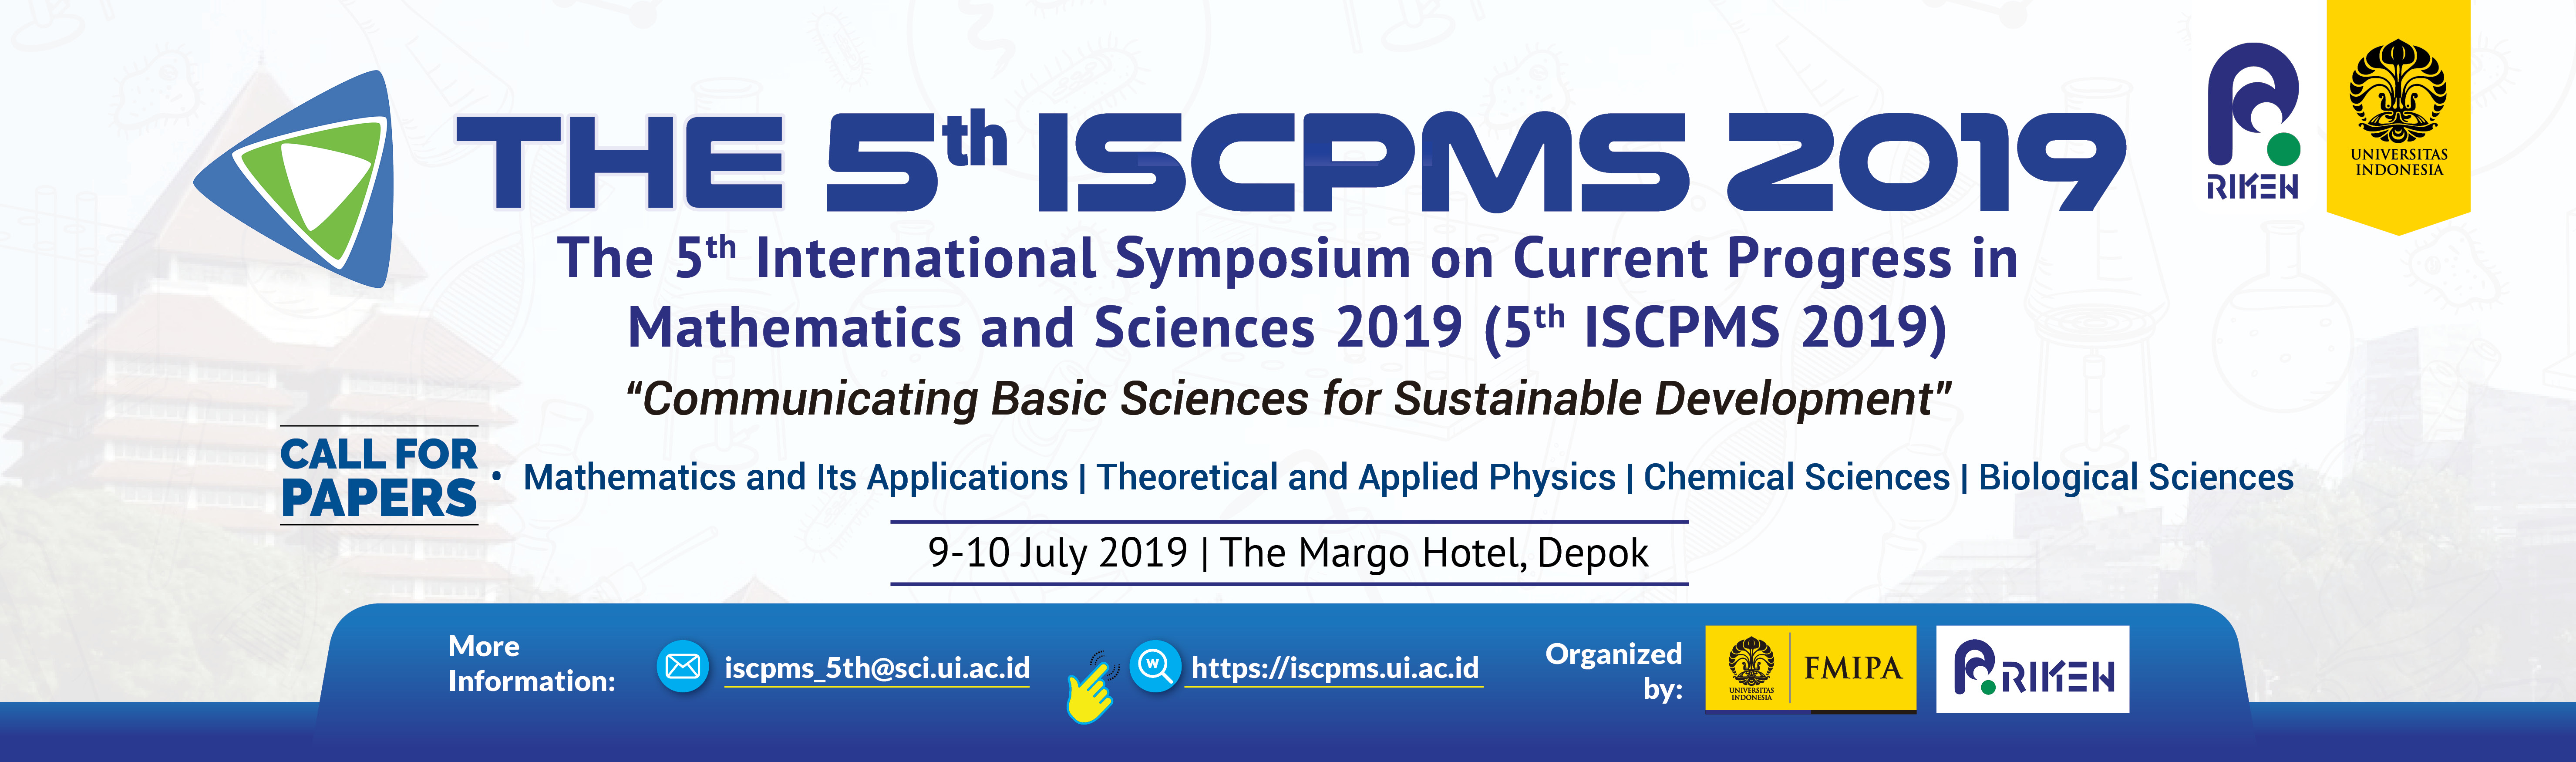 Web-Banner-ISCPMS-2019_MIPA